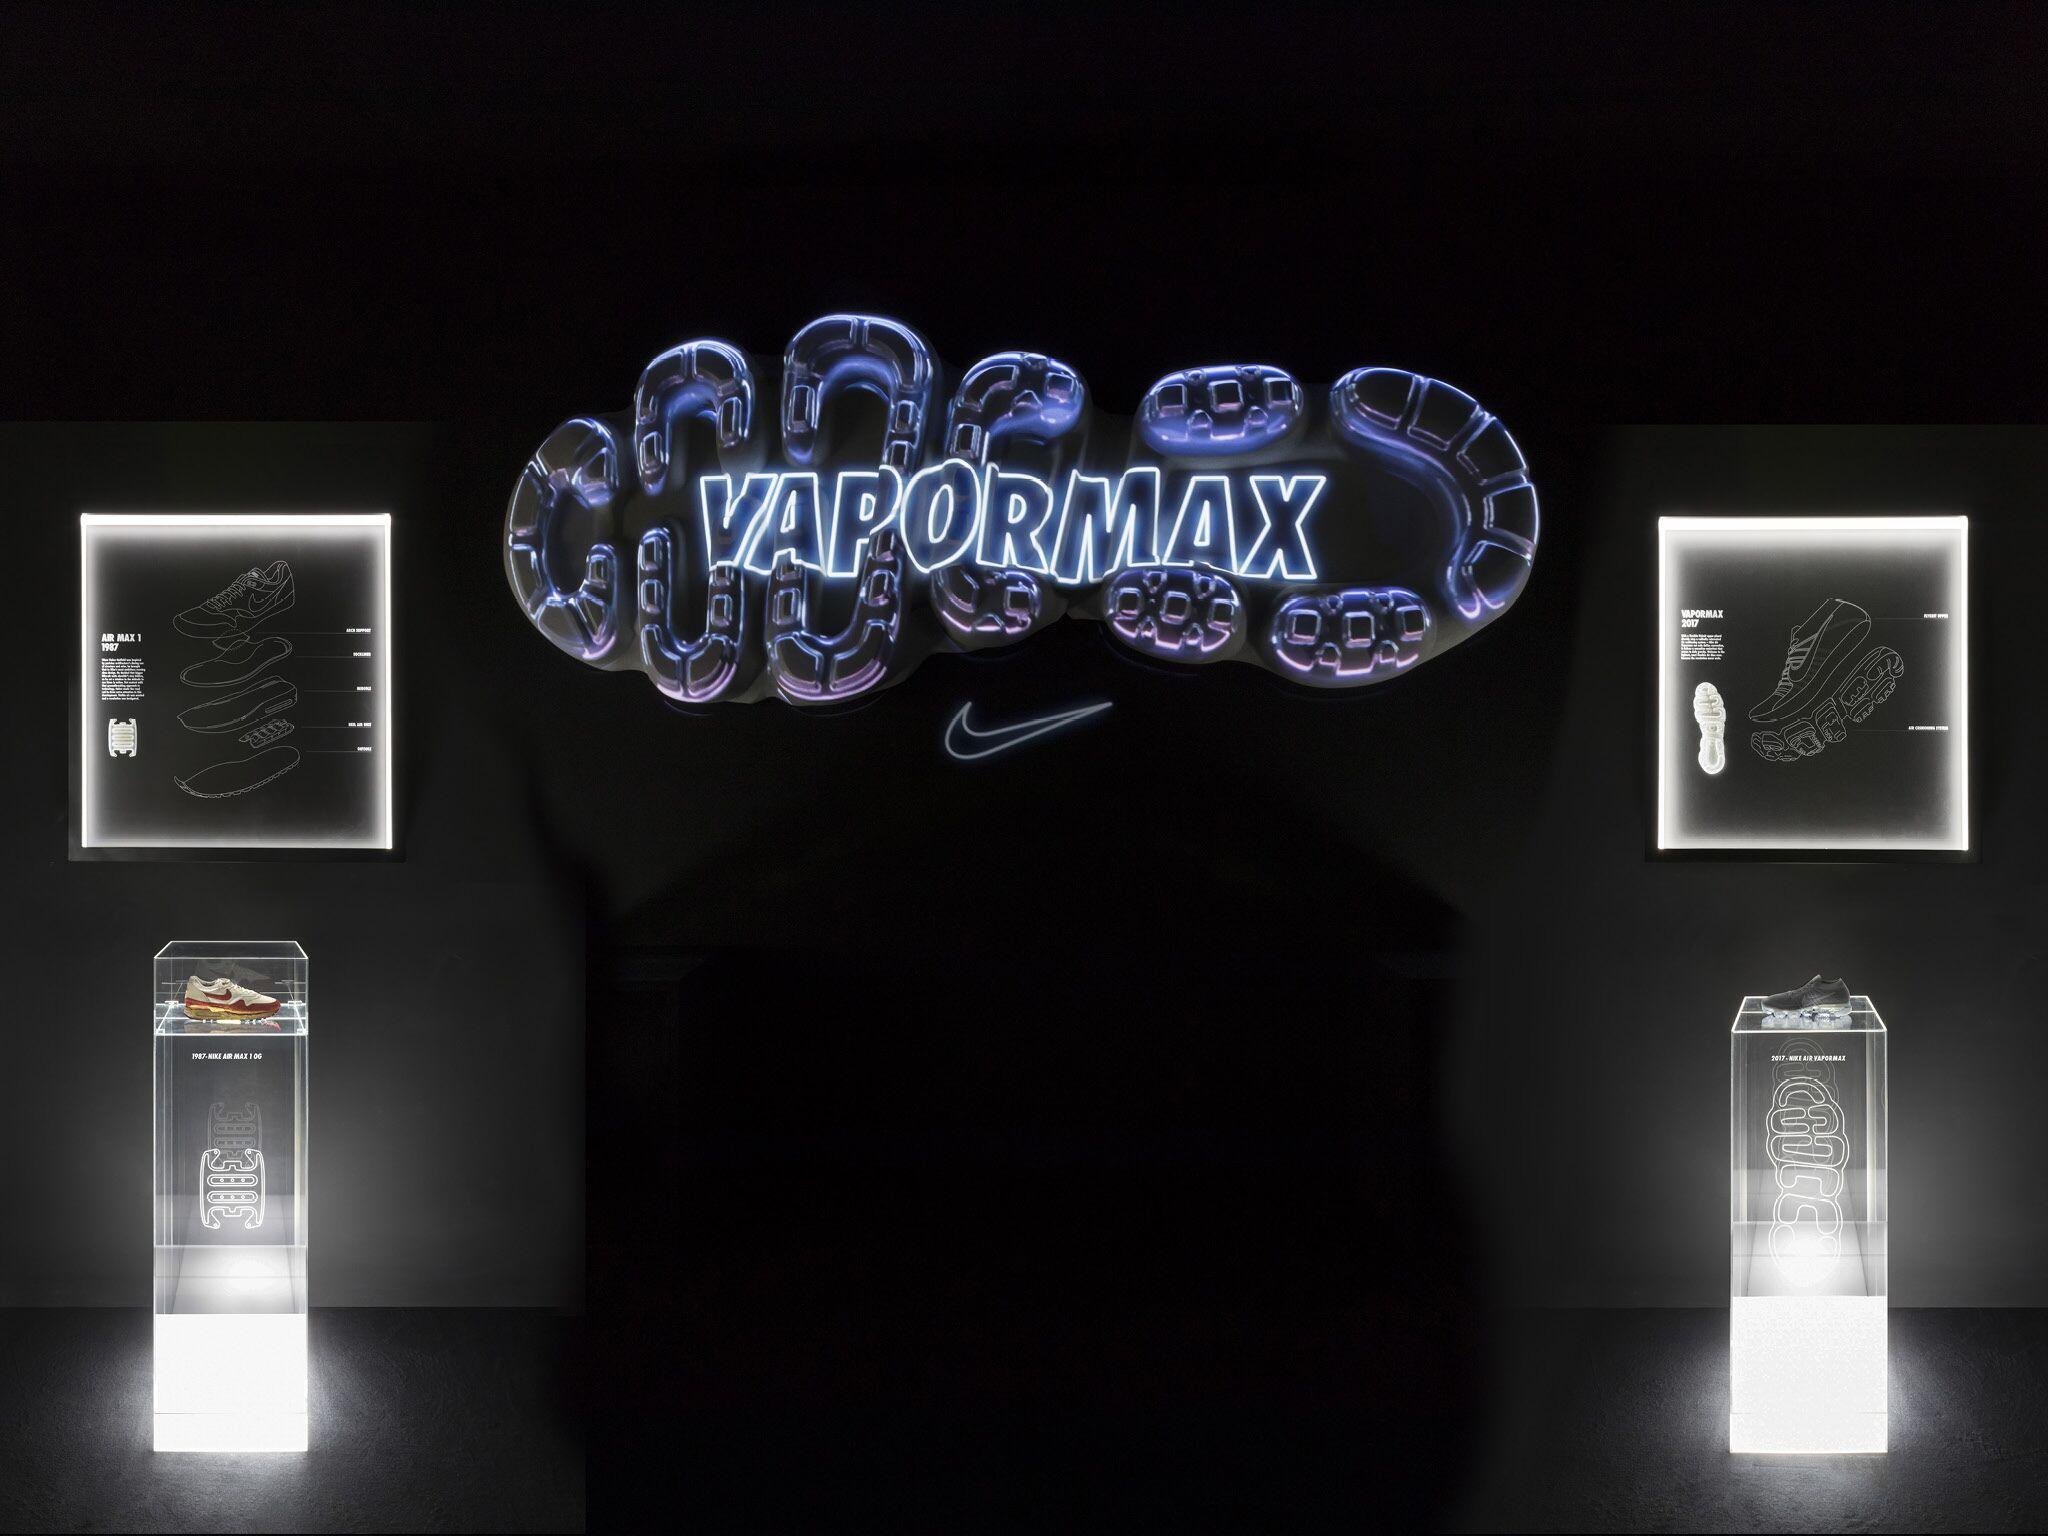 Retail Display Production Amd 17 Vapormax Sole